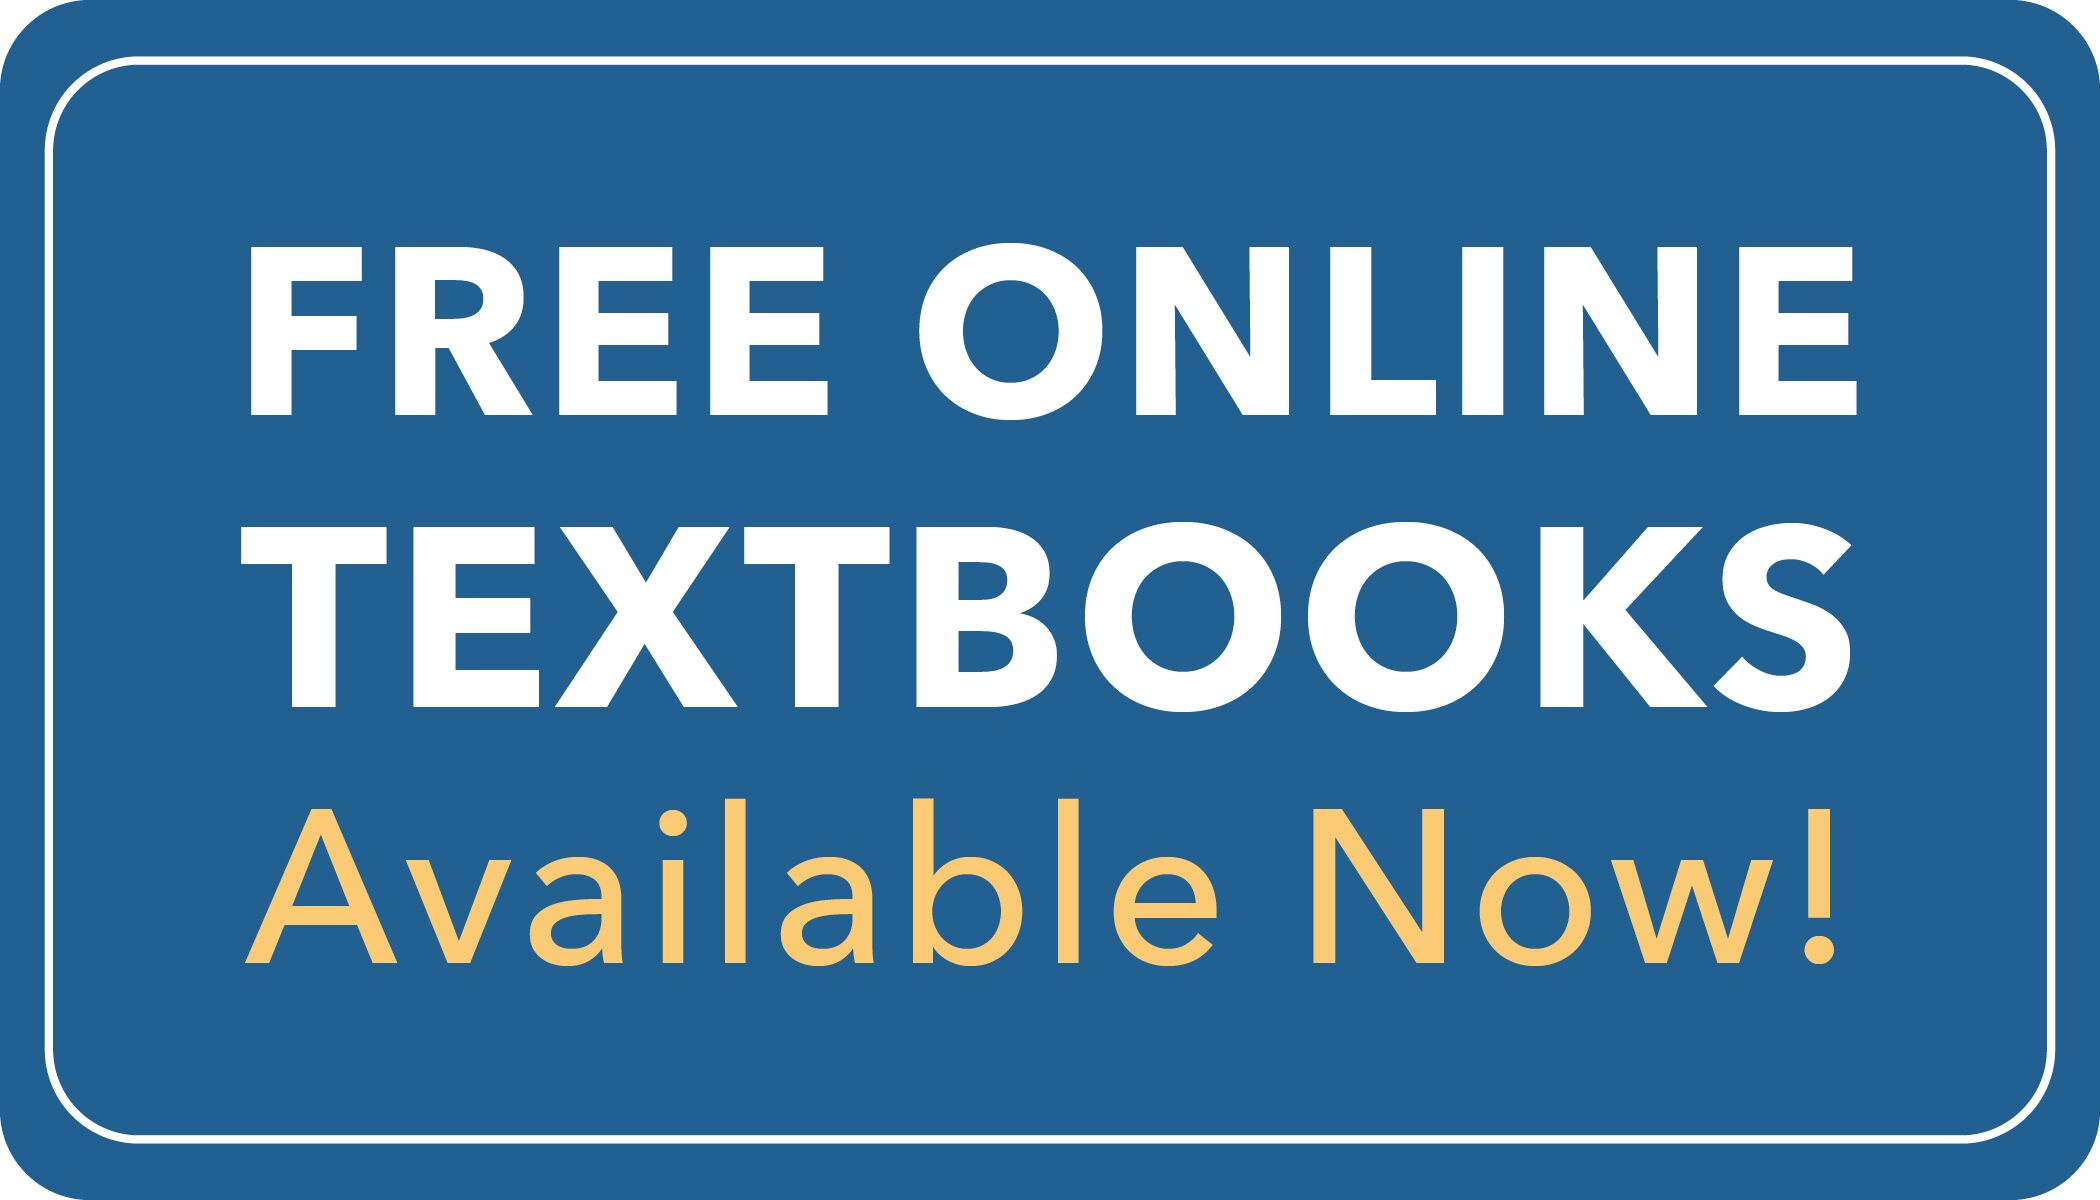 Free Online Textbooks Available Now!